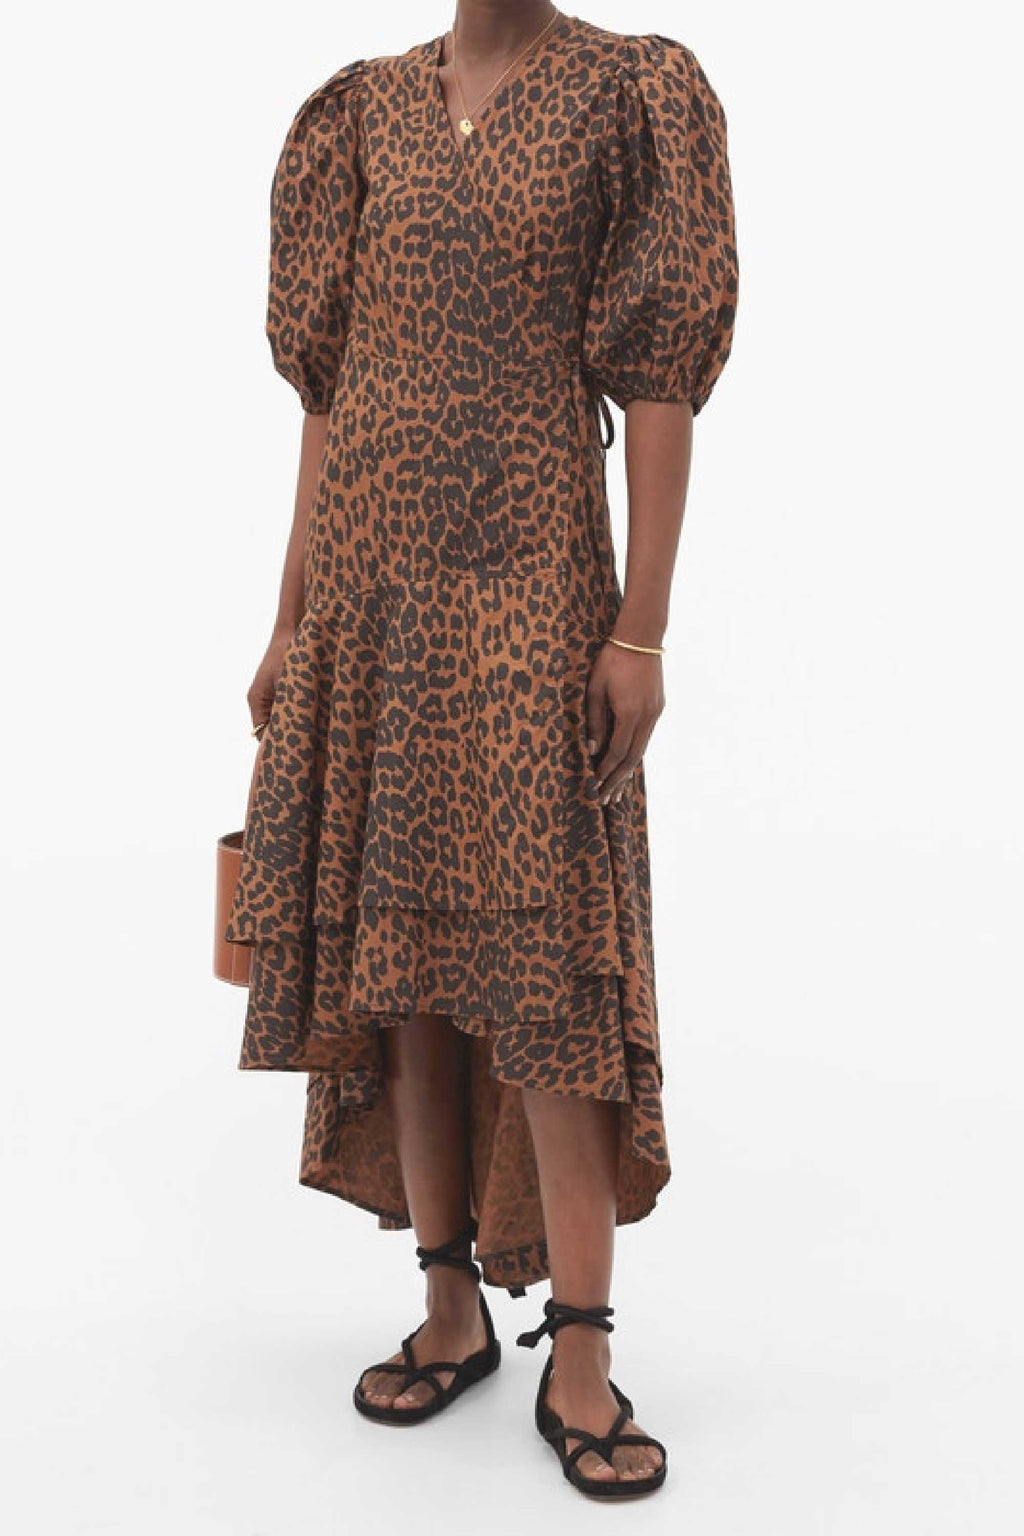 PUFF SLEEVE WRAP DRESS - LEOPARD